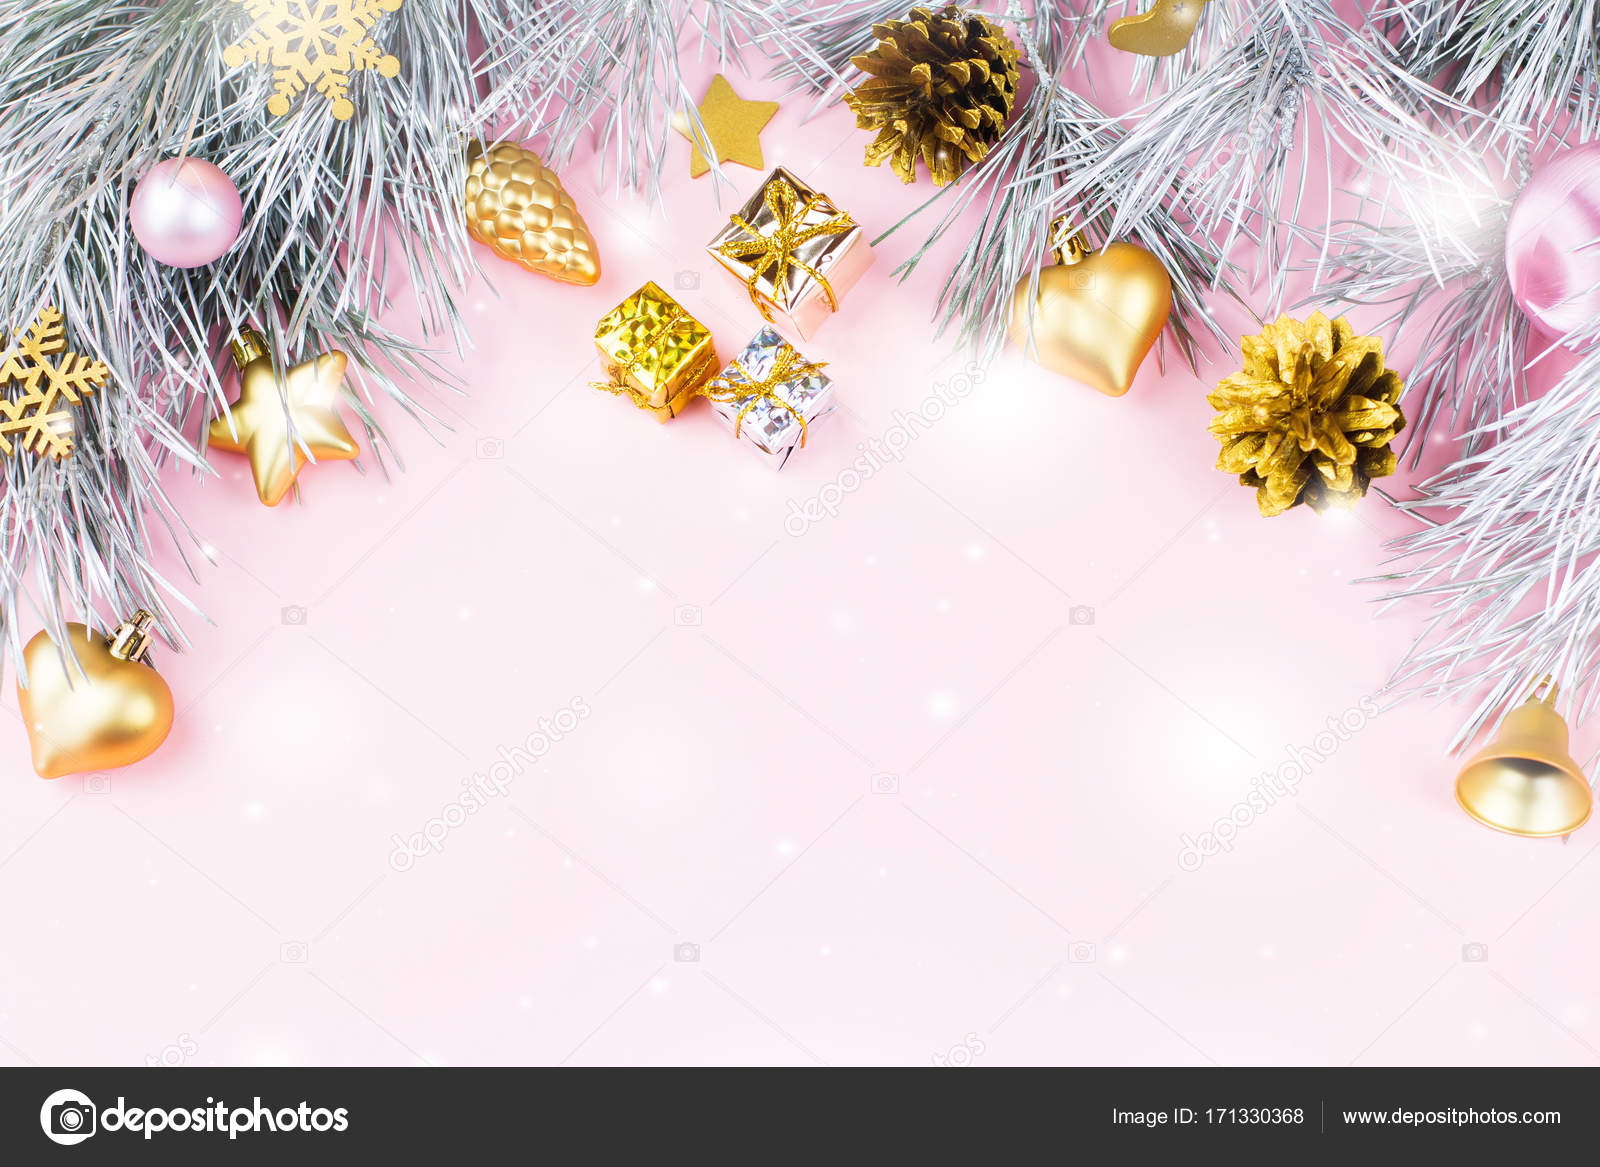 Pastel Christmas Ornaments.Christmas Border With Fir Branches Conifer Cones Christmas